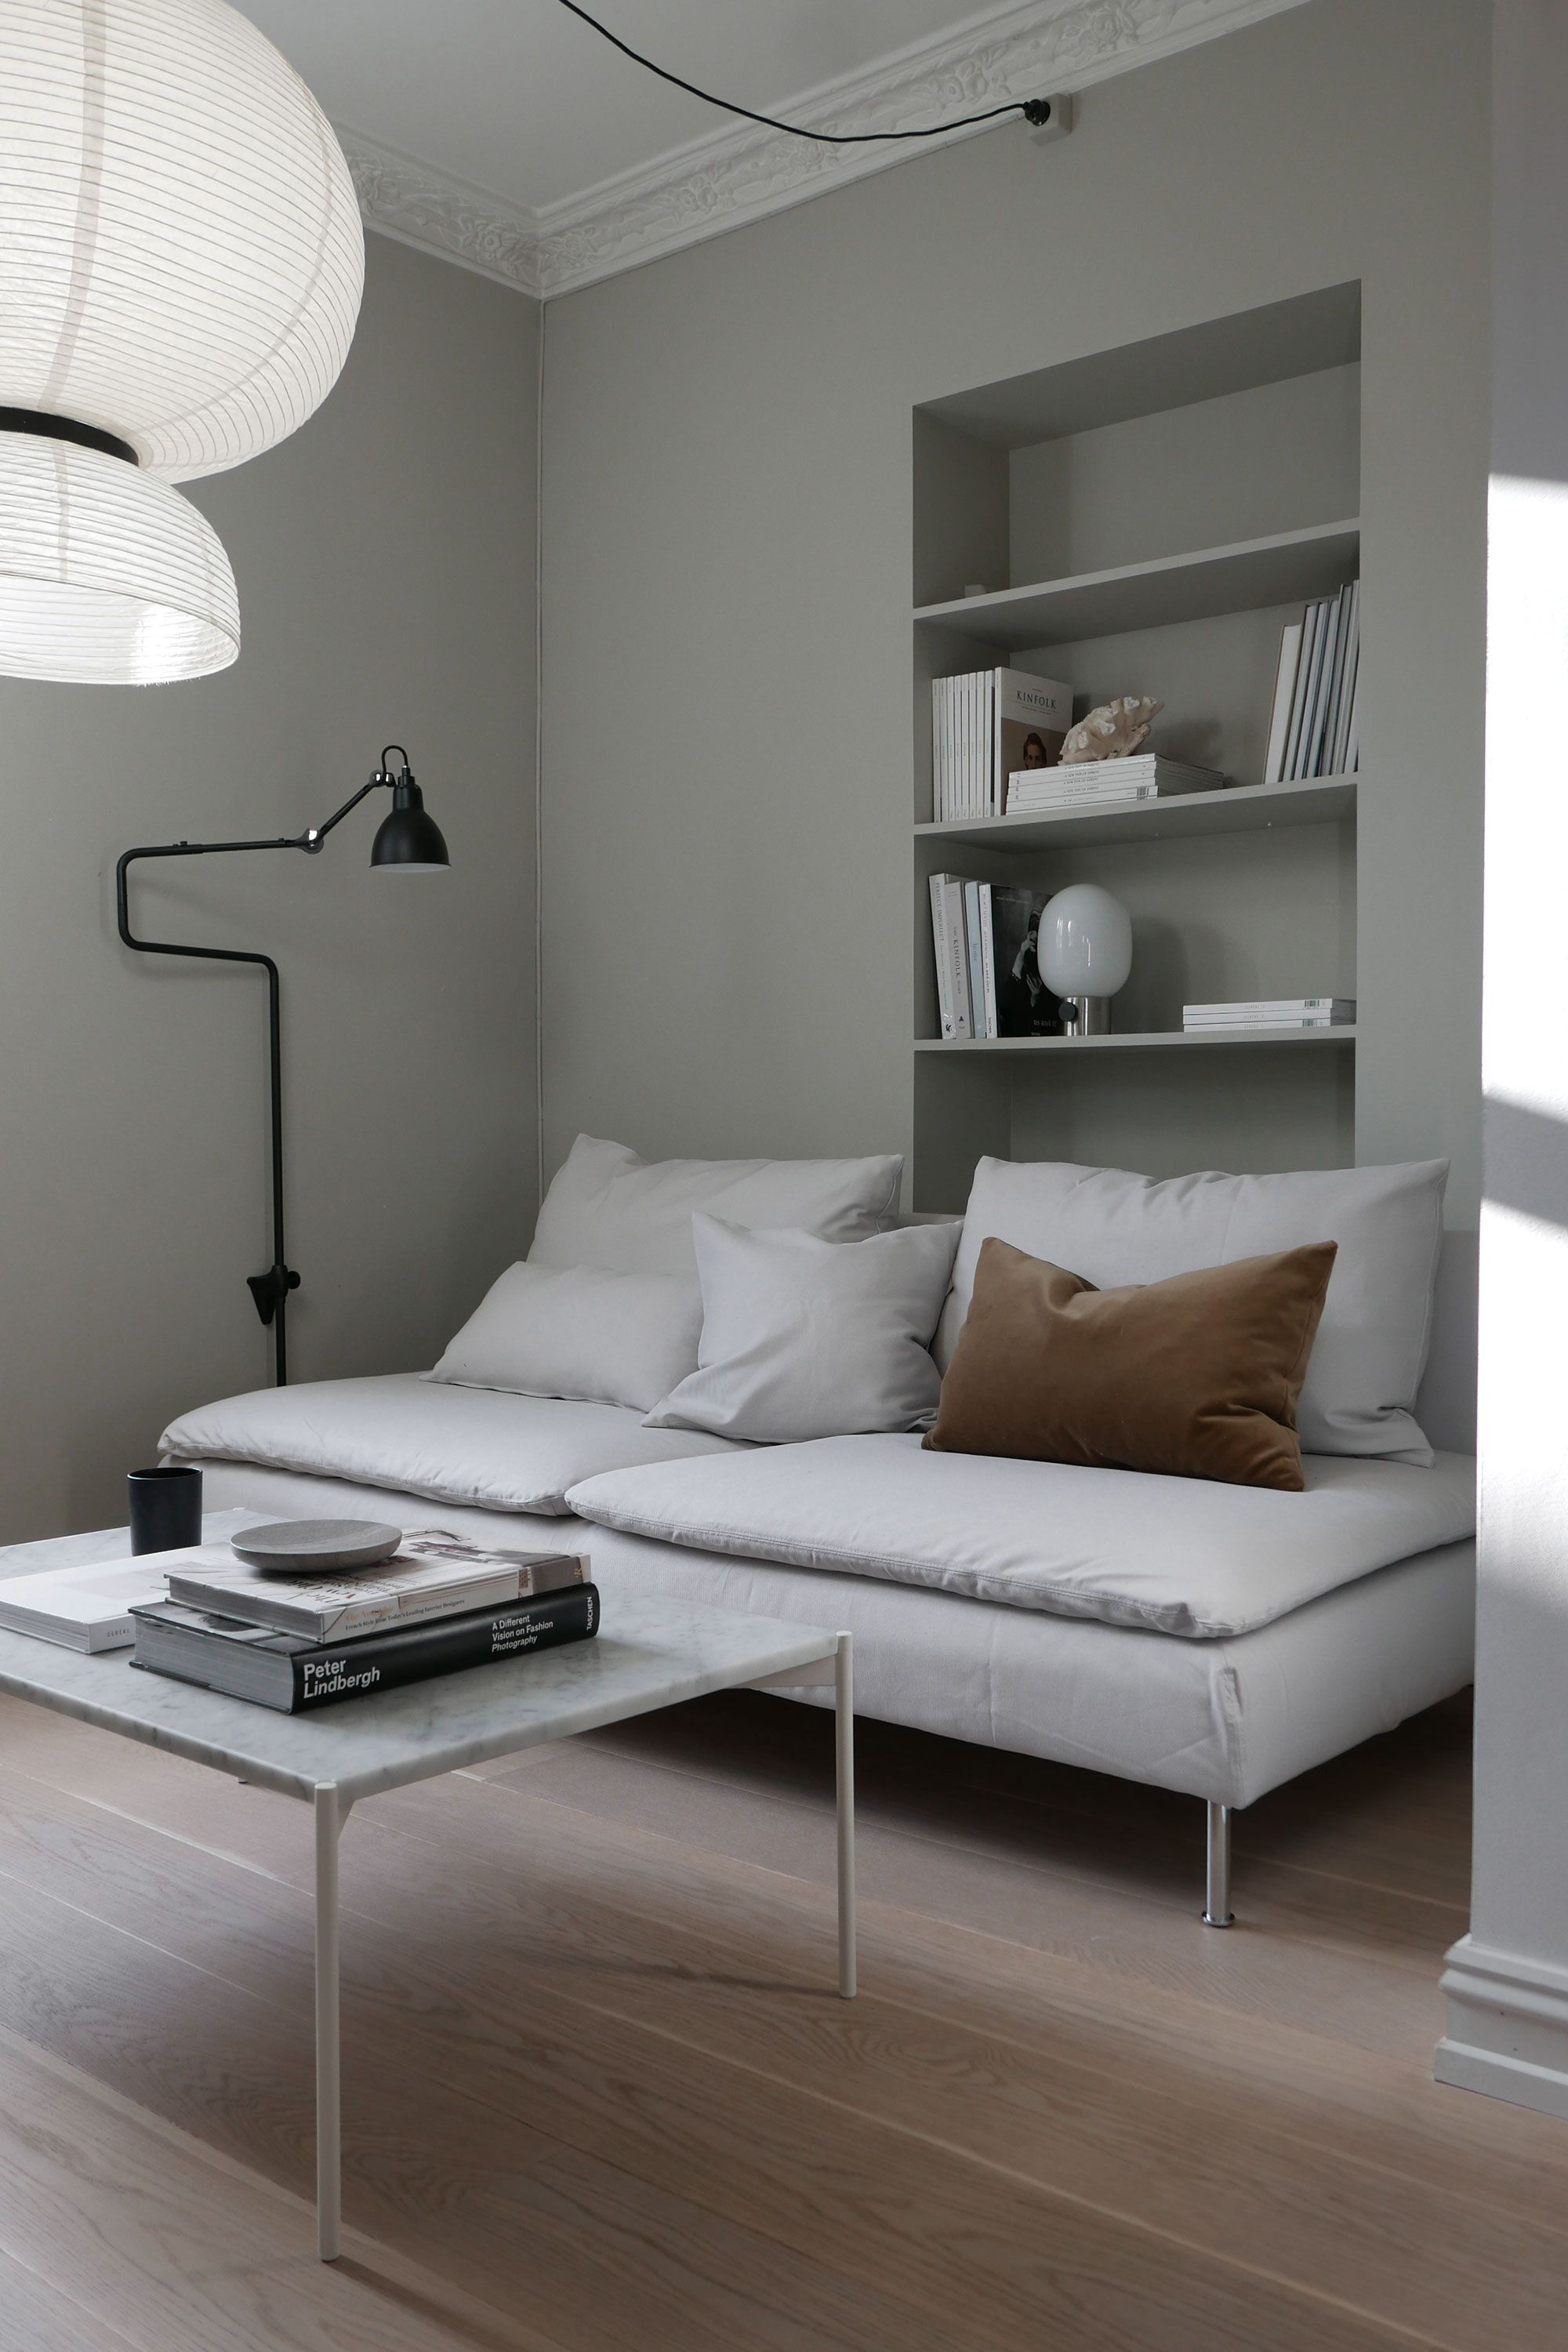 Super stylist updated her IKEA Söderhamn sofa bed with a